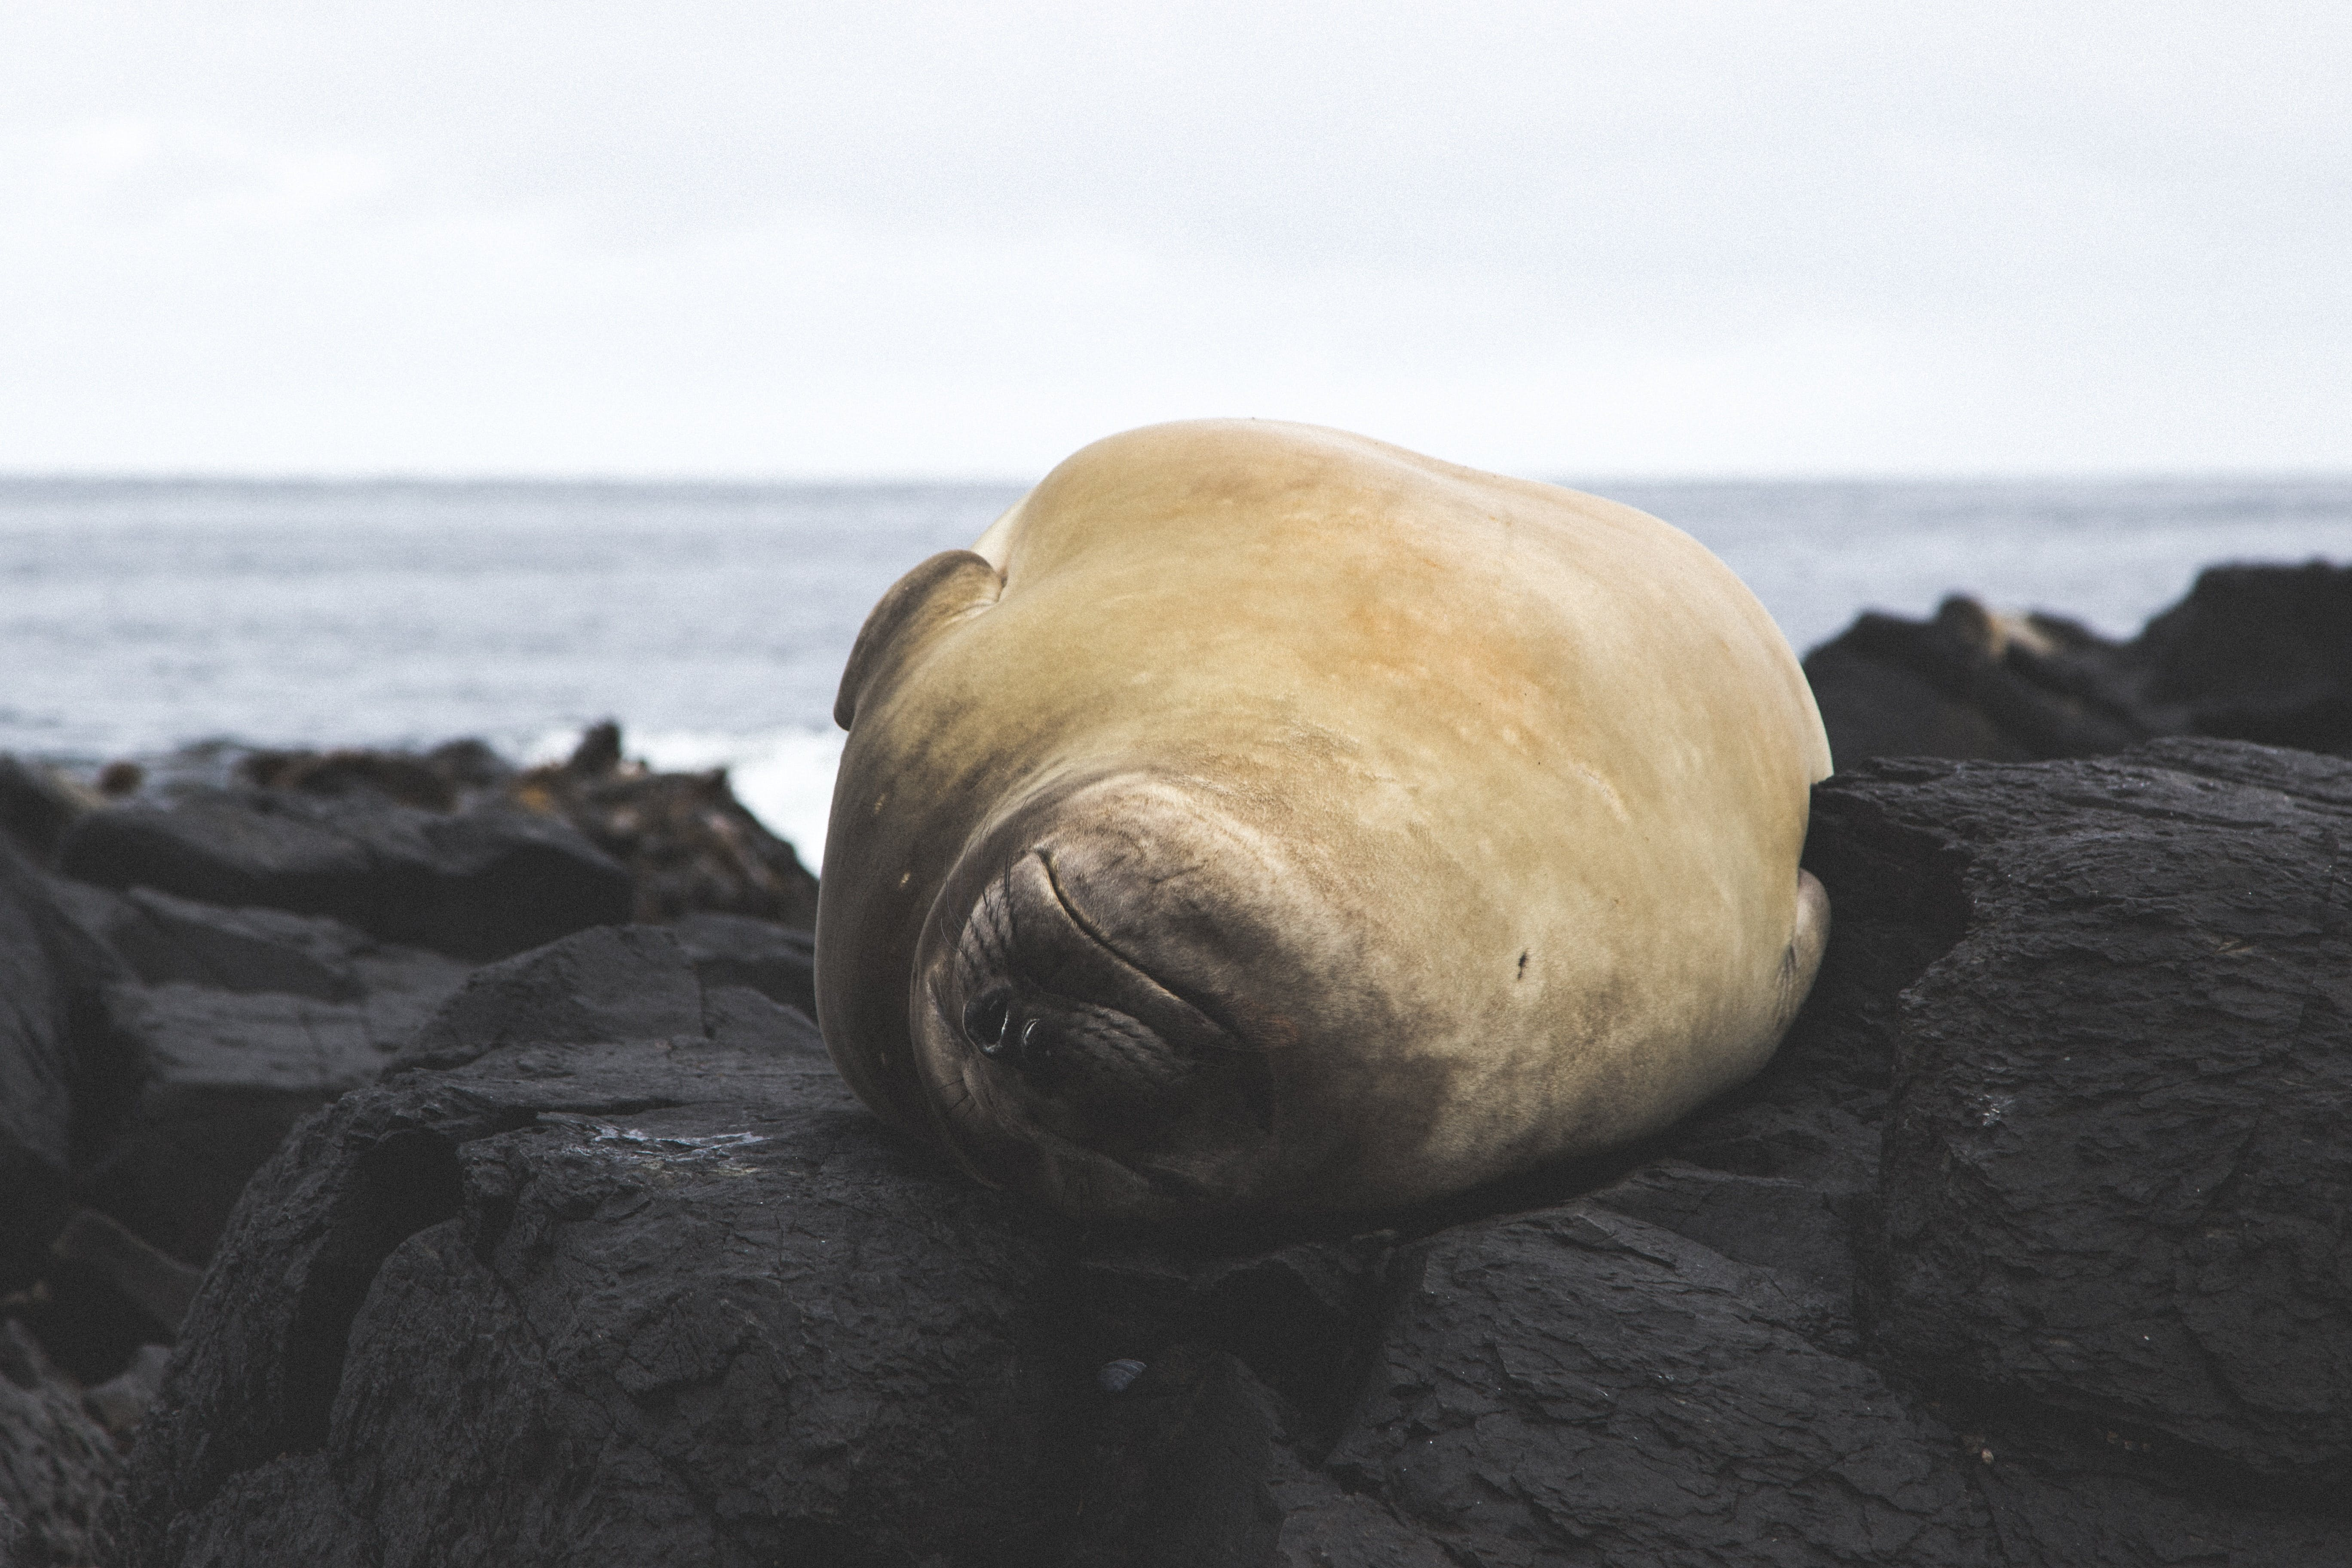 Get Close to a Sleeping Seal - Photo by Etienne Pauthenet